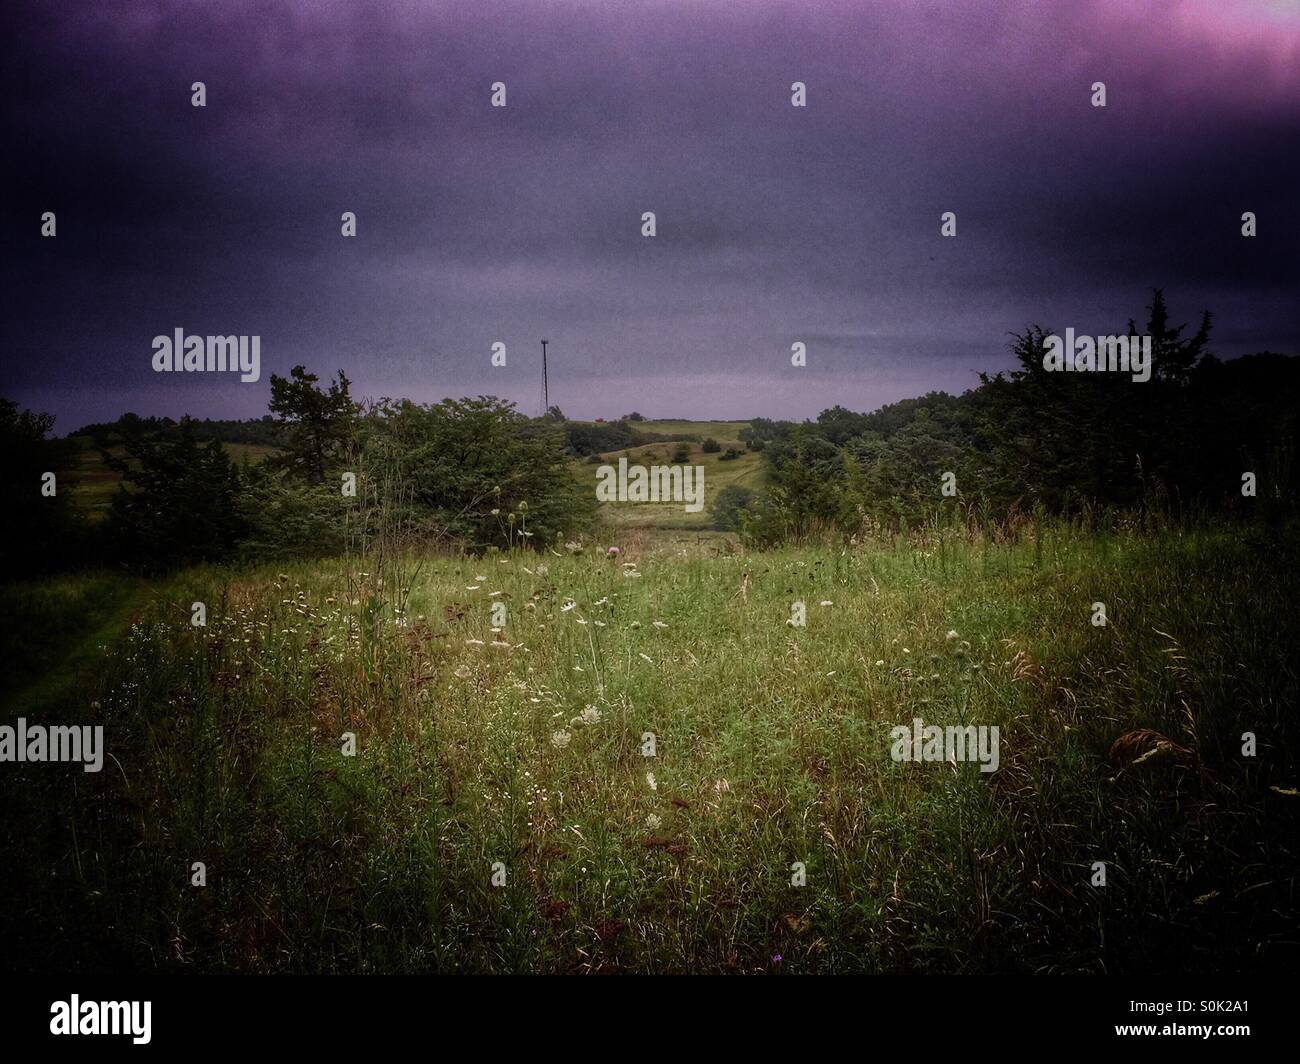 Landscape of Meadow before a storm - Stock Image